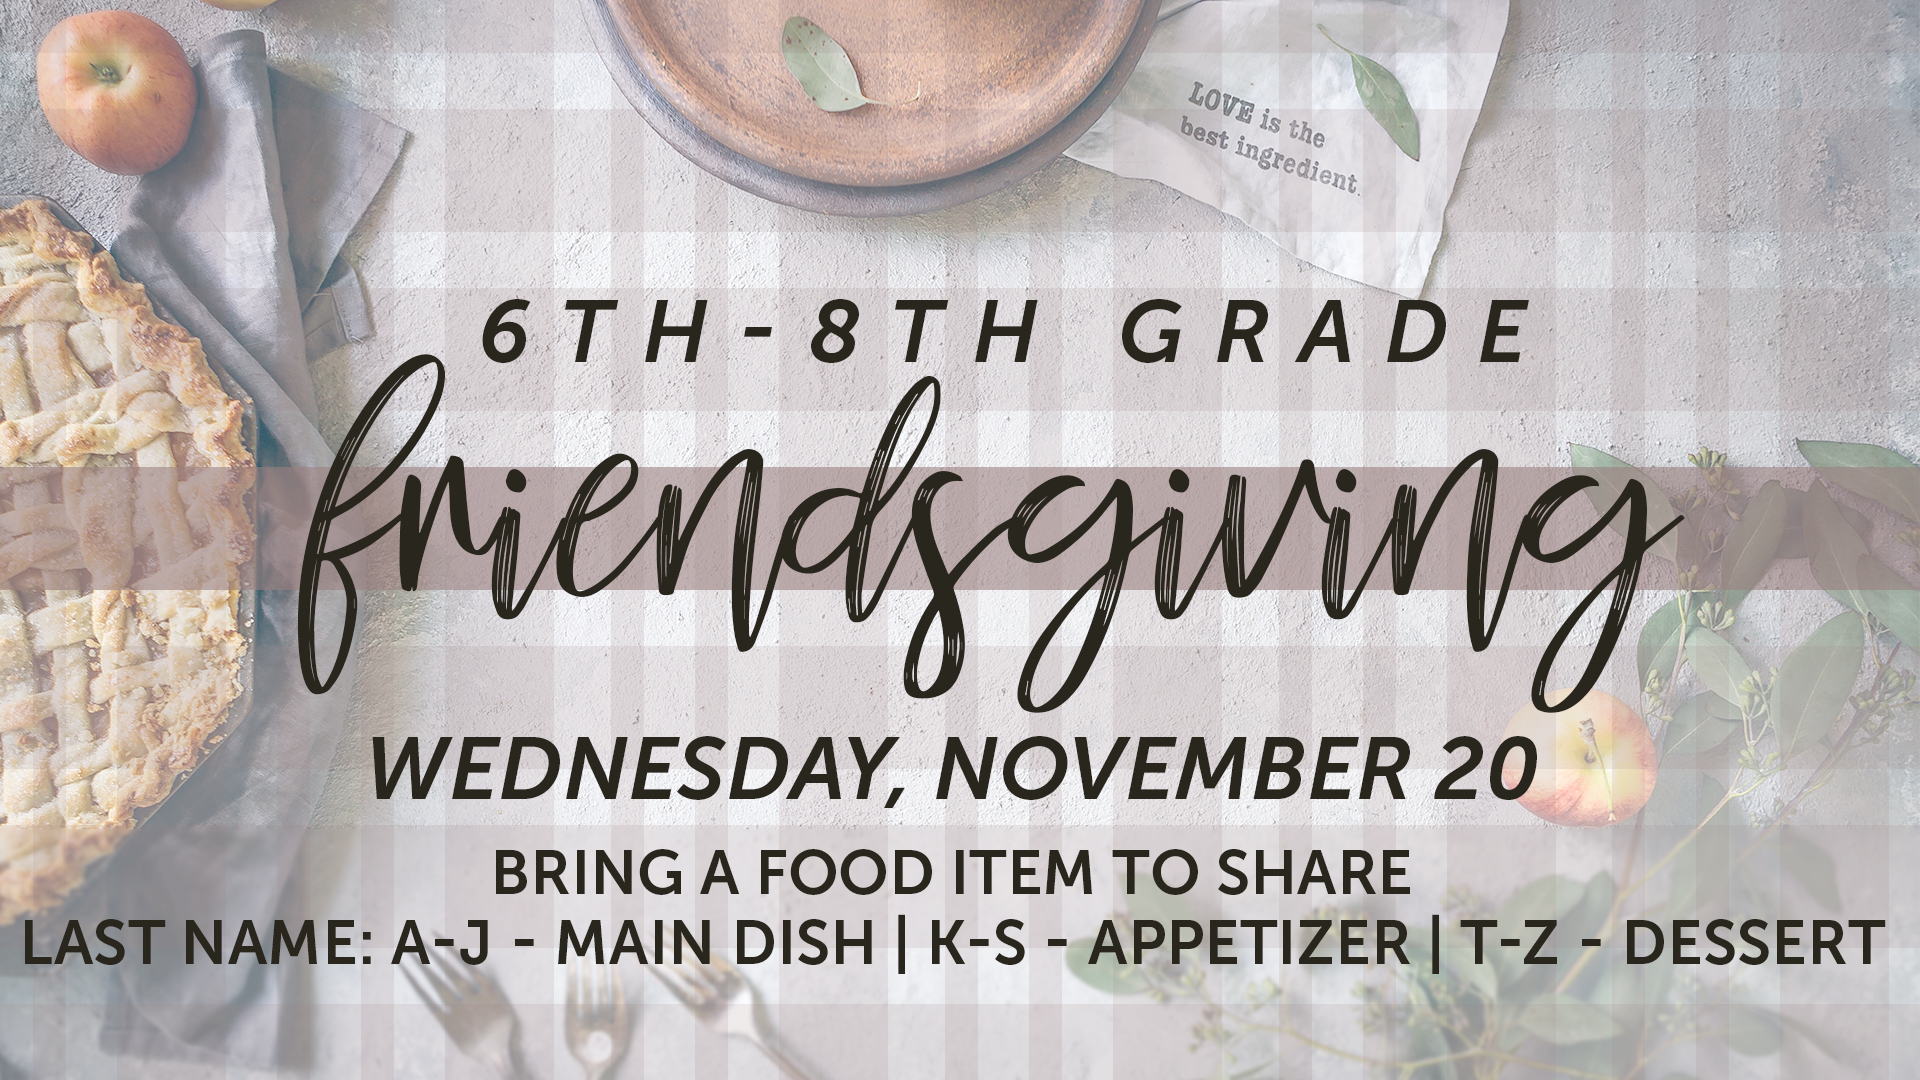 MS-Friendsgiving-Announcement.jpg?mtime=20191112125953#asset:25228